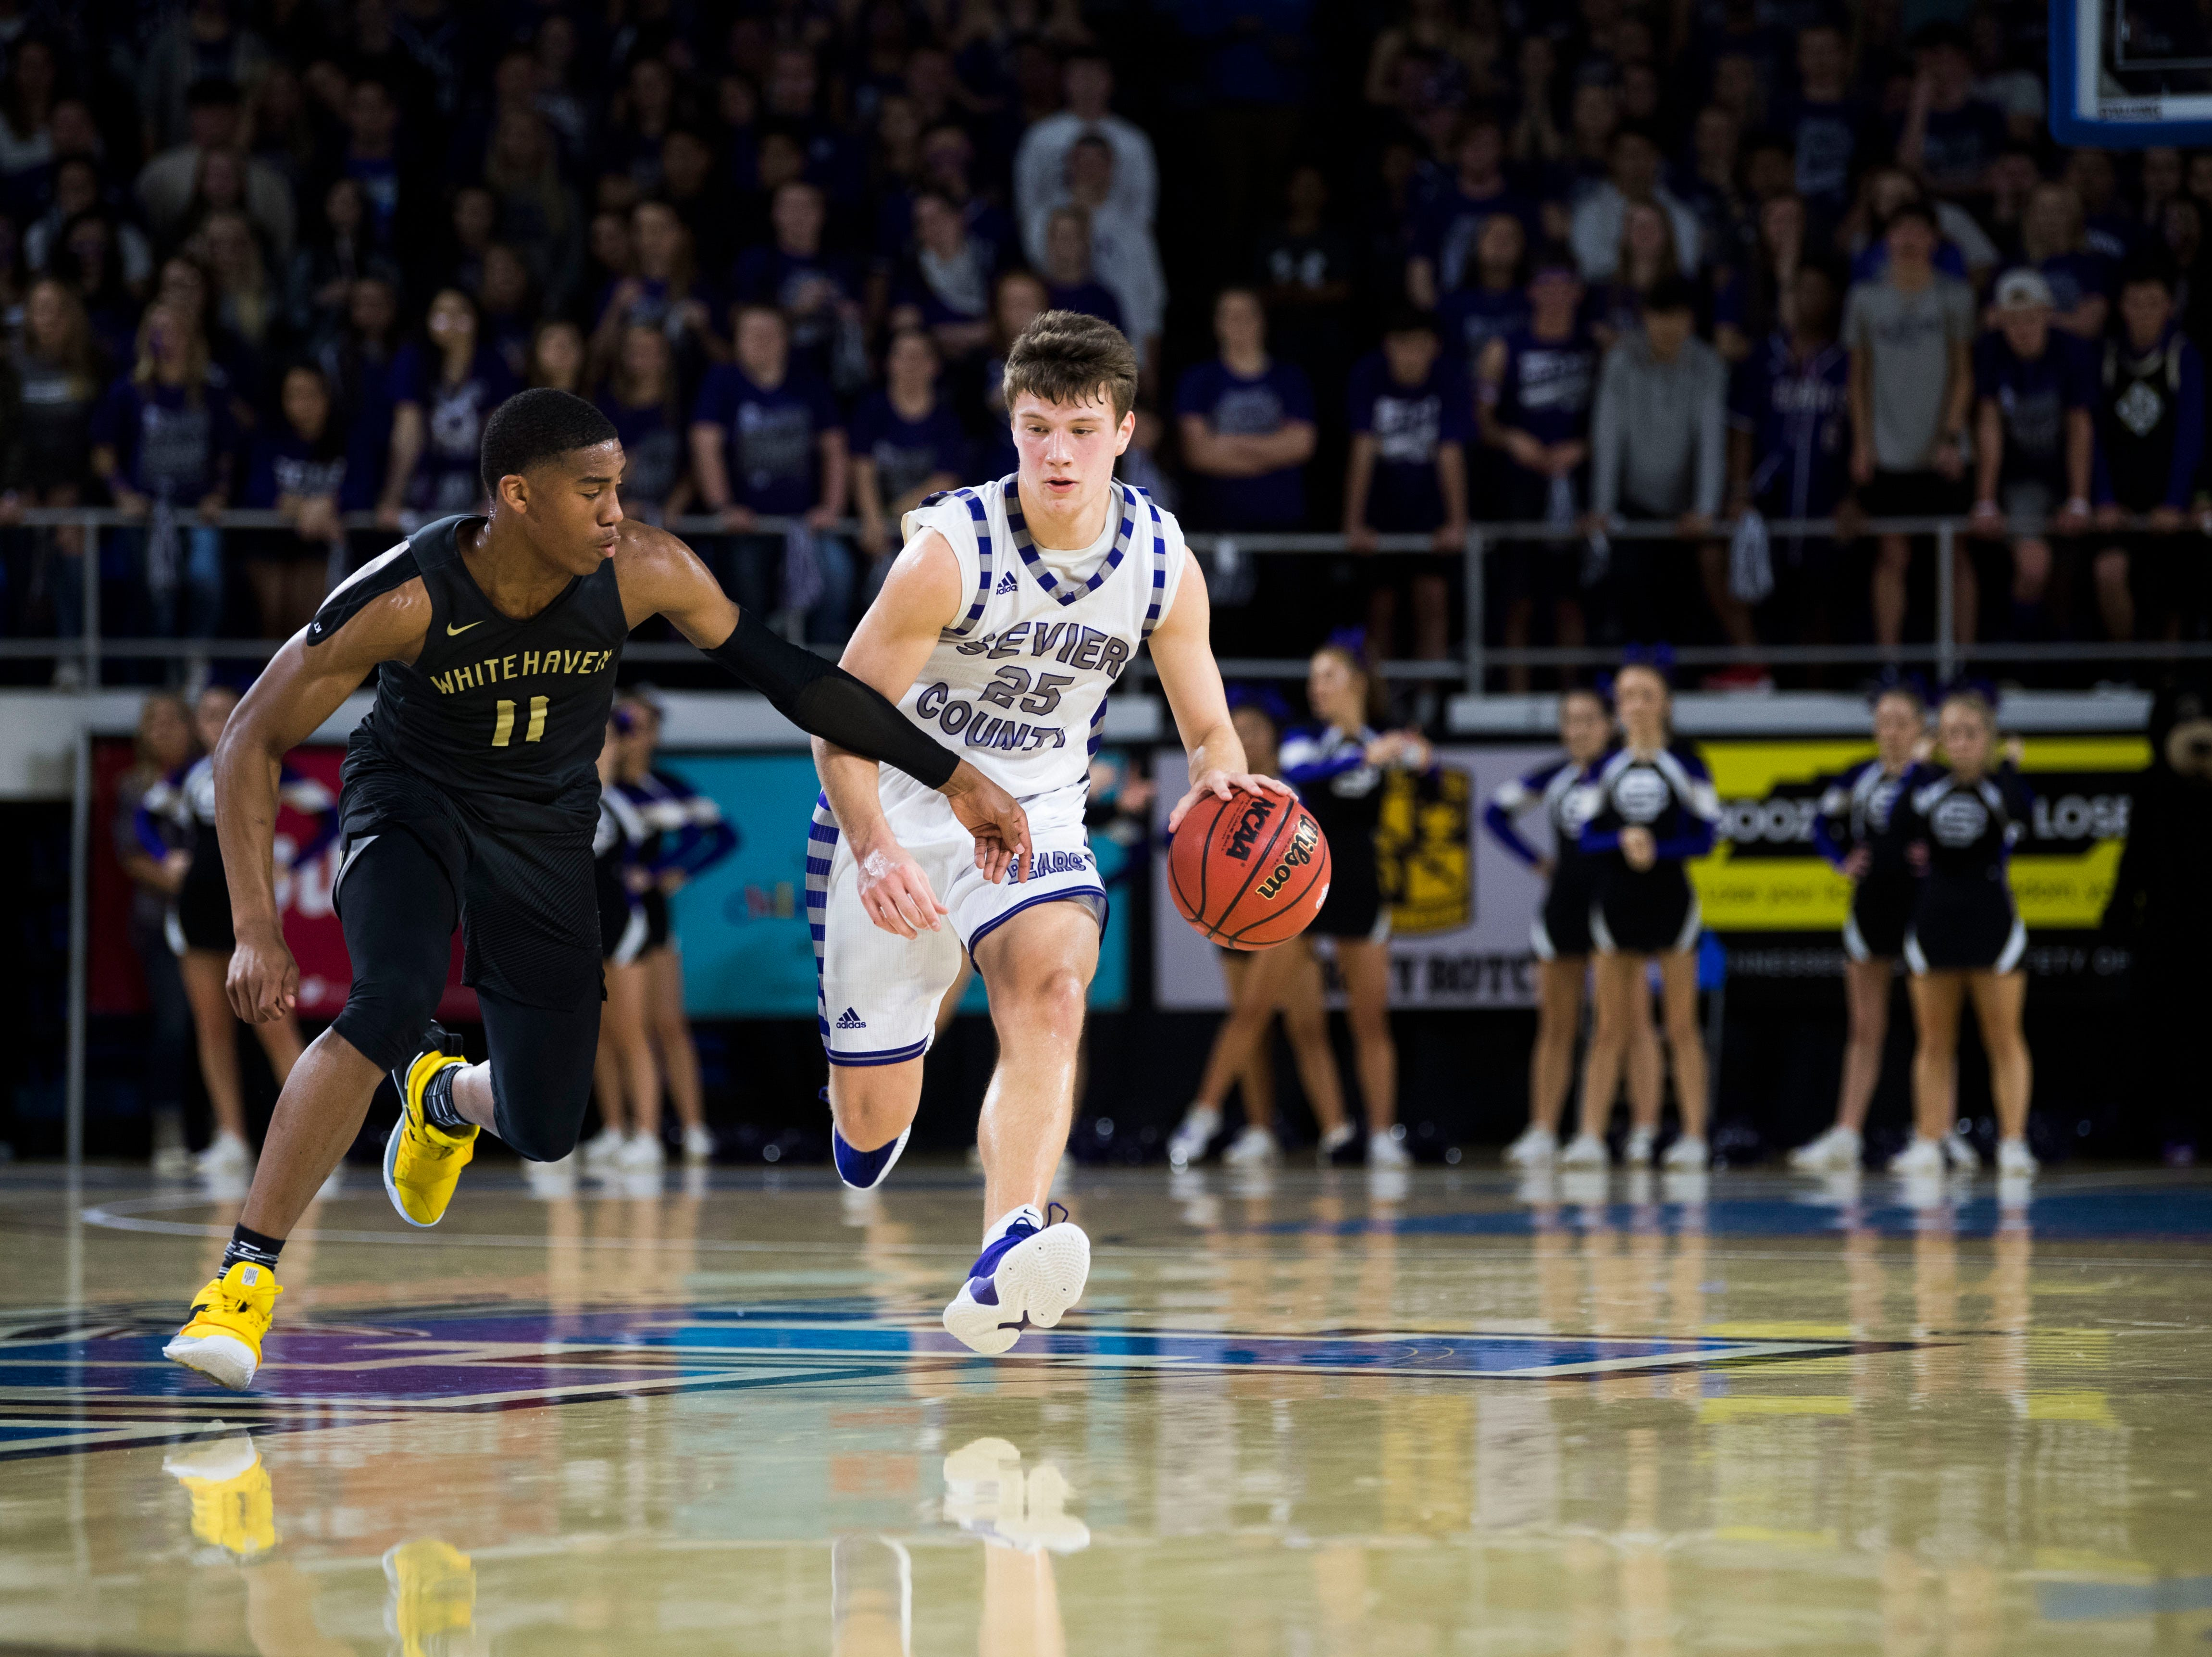 Sevier County's Camden McElhaney (25) drives down the court while defended by Whitehaven's Matthew Murrell (11) during a TSSAA AAA state quarterfinal game between Sevier County and Whitehaven at the Murphy Center in Murfreesboro, Wednesday, March 13, 2019.